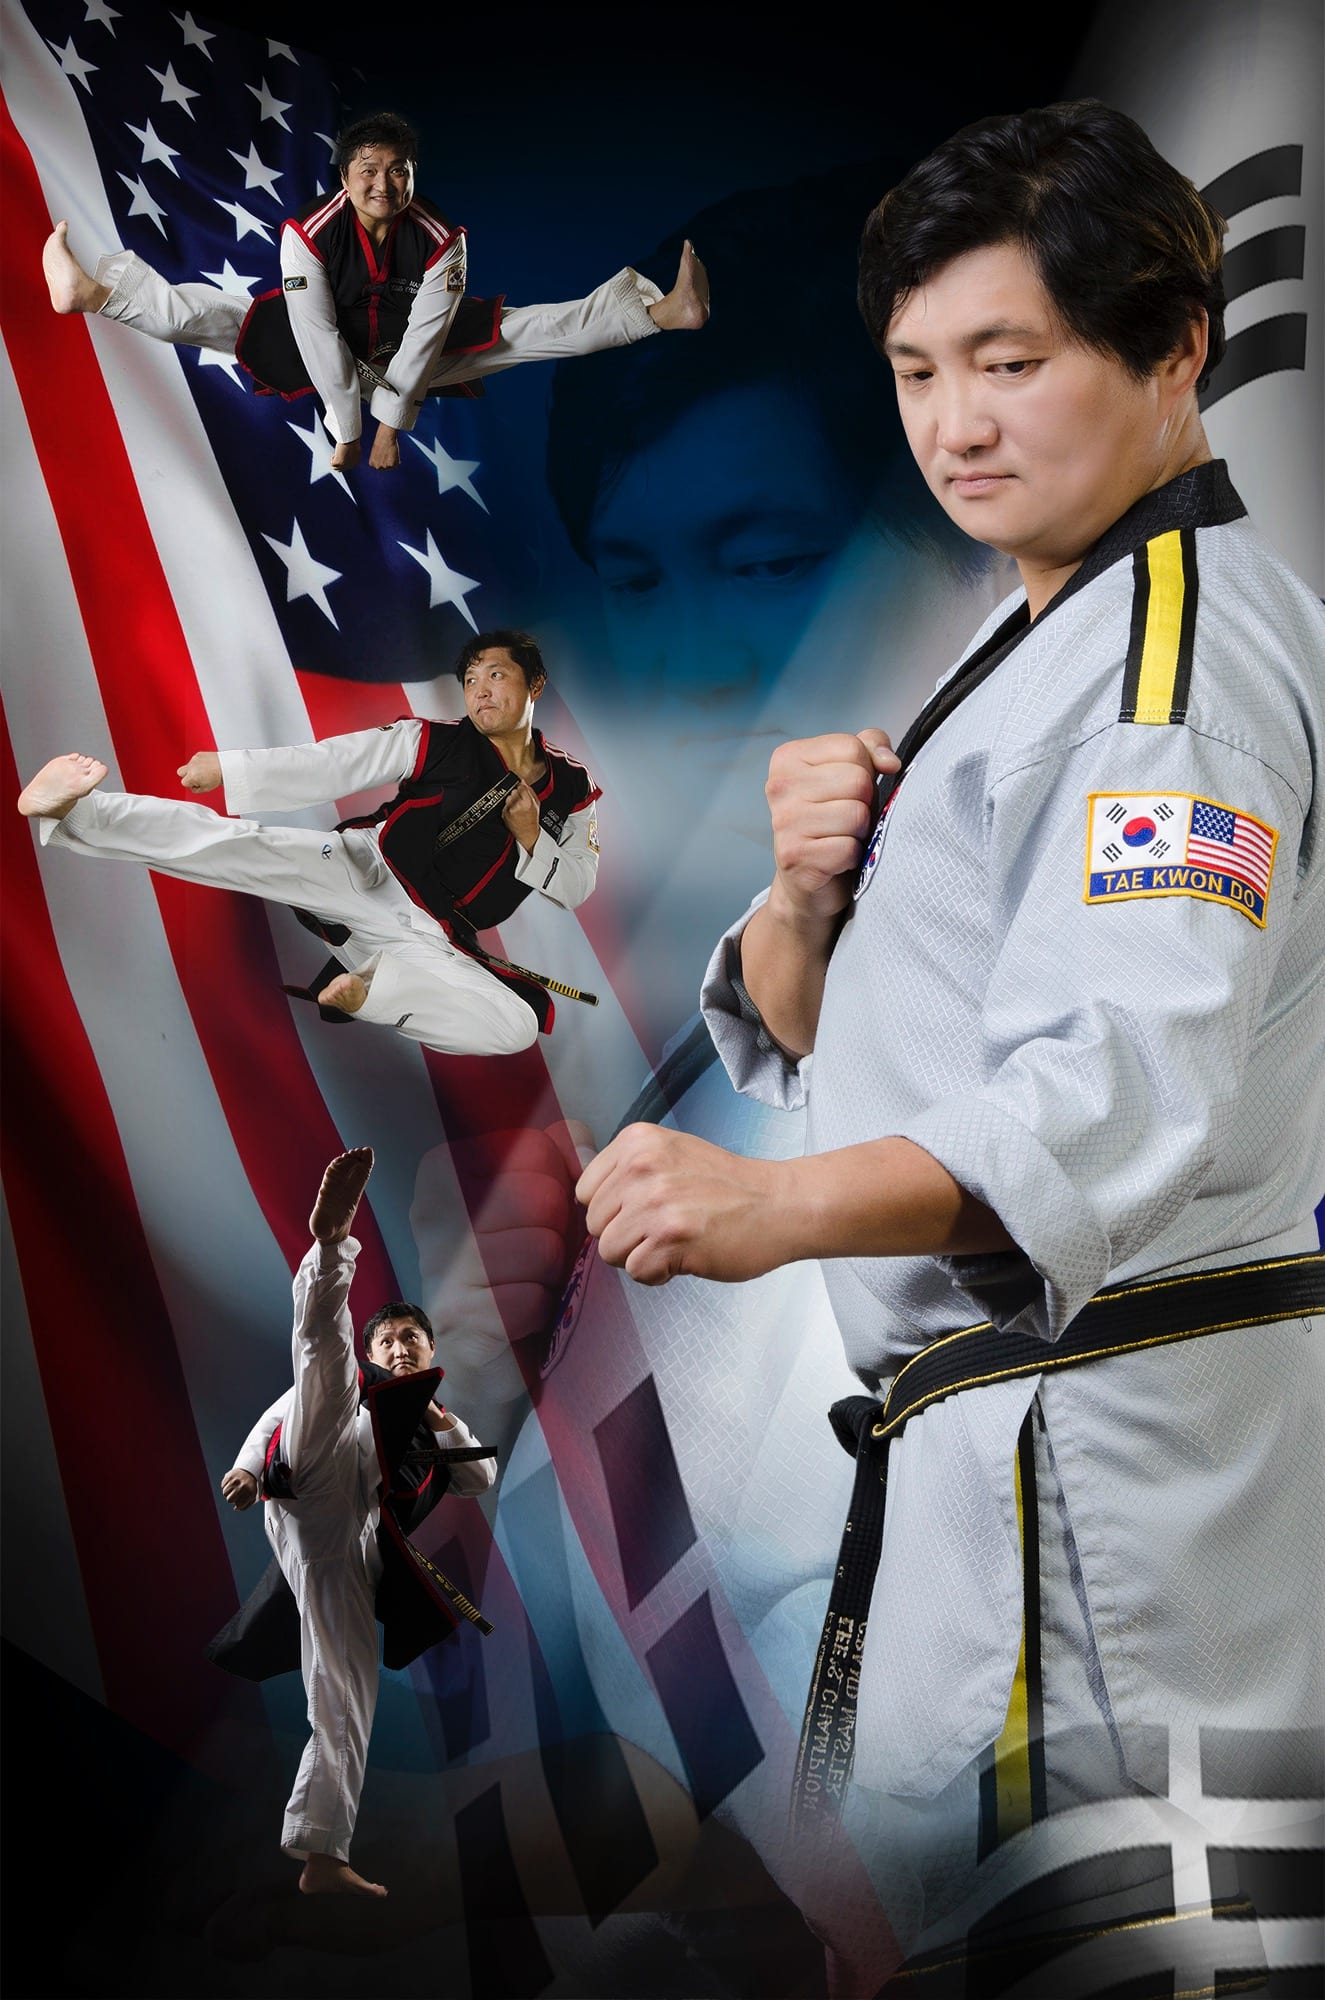 Grand Master. Yong Hyeok Lee in Lee's Champion Taekwondo Academy